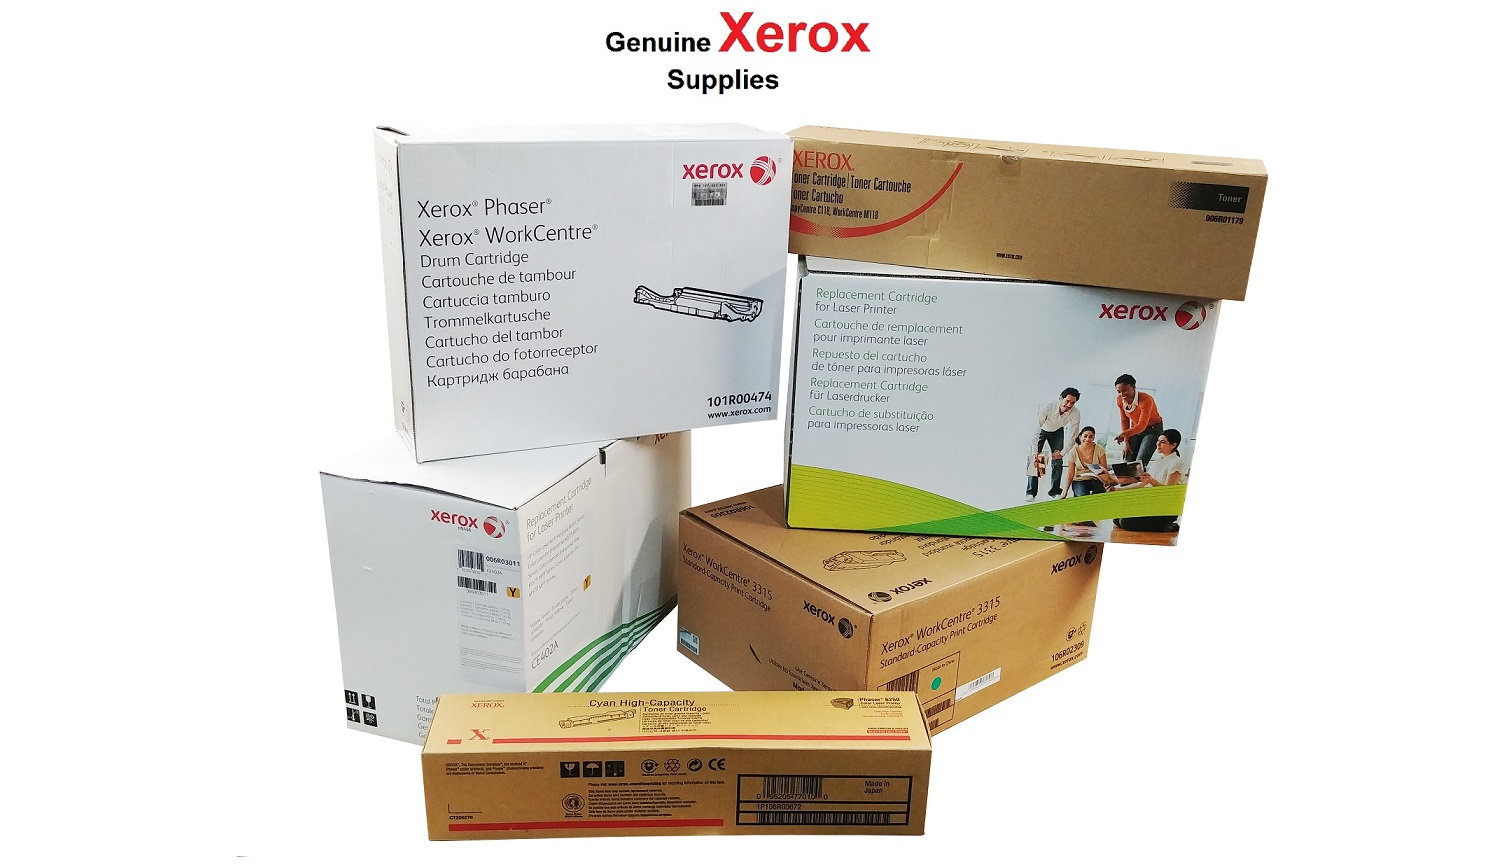 Xerox Black Toner Cartridge For WorkCentre 7500 7800 013R00662